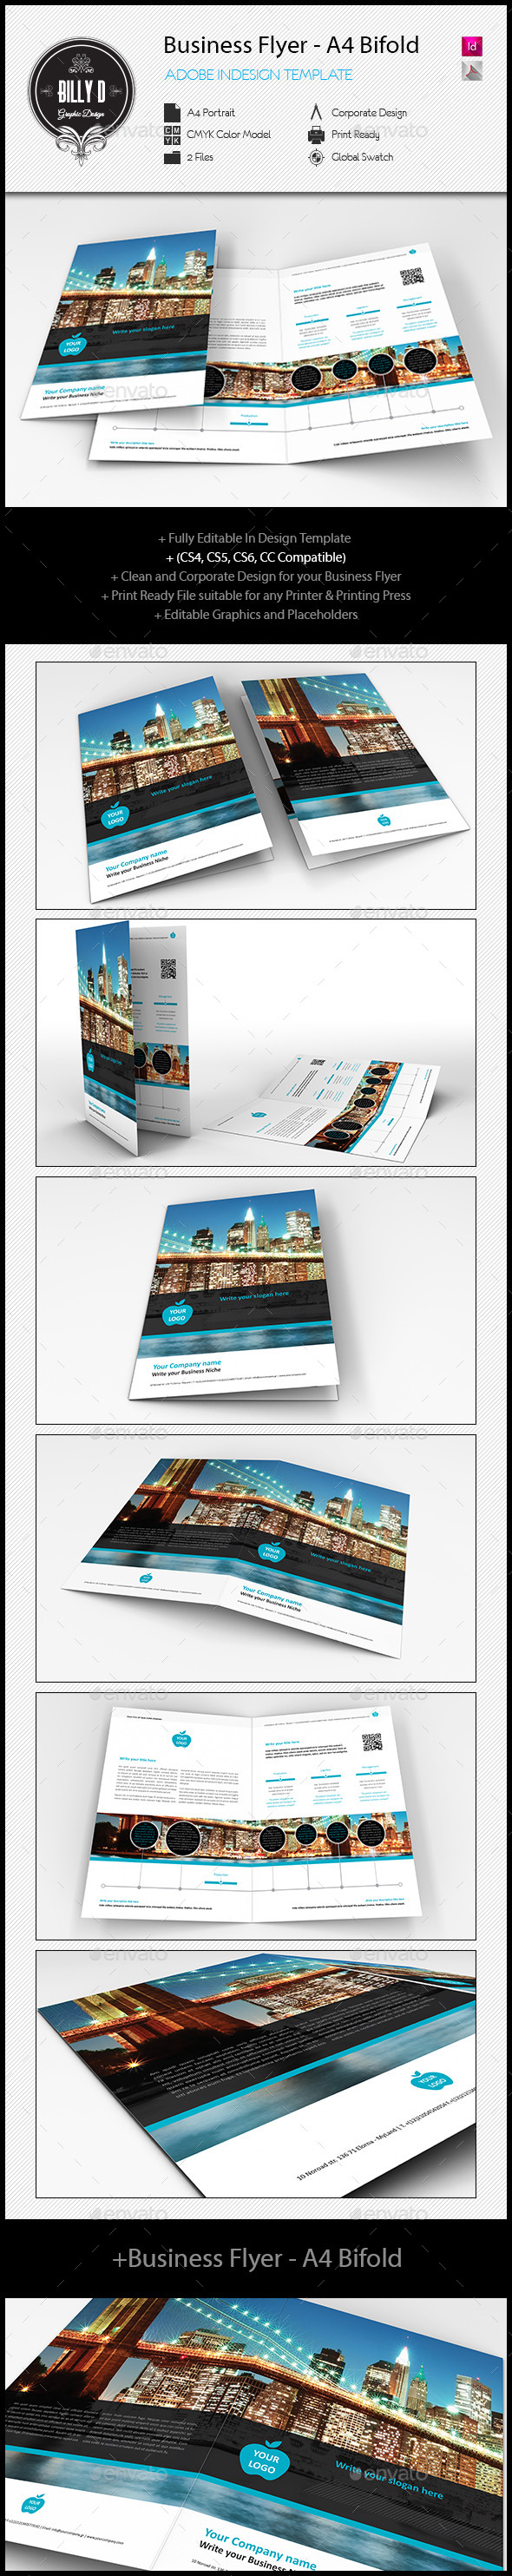 GraphicRiver Business Flyer A4 Bifold 10843053